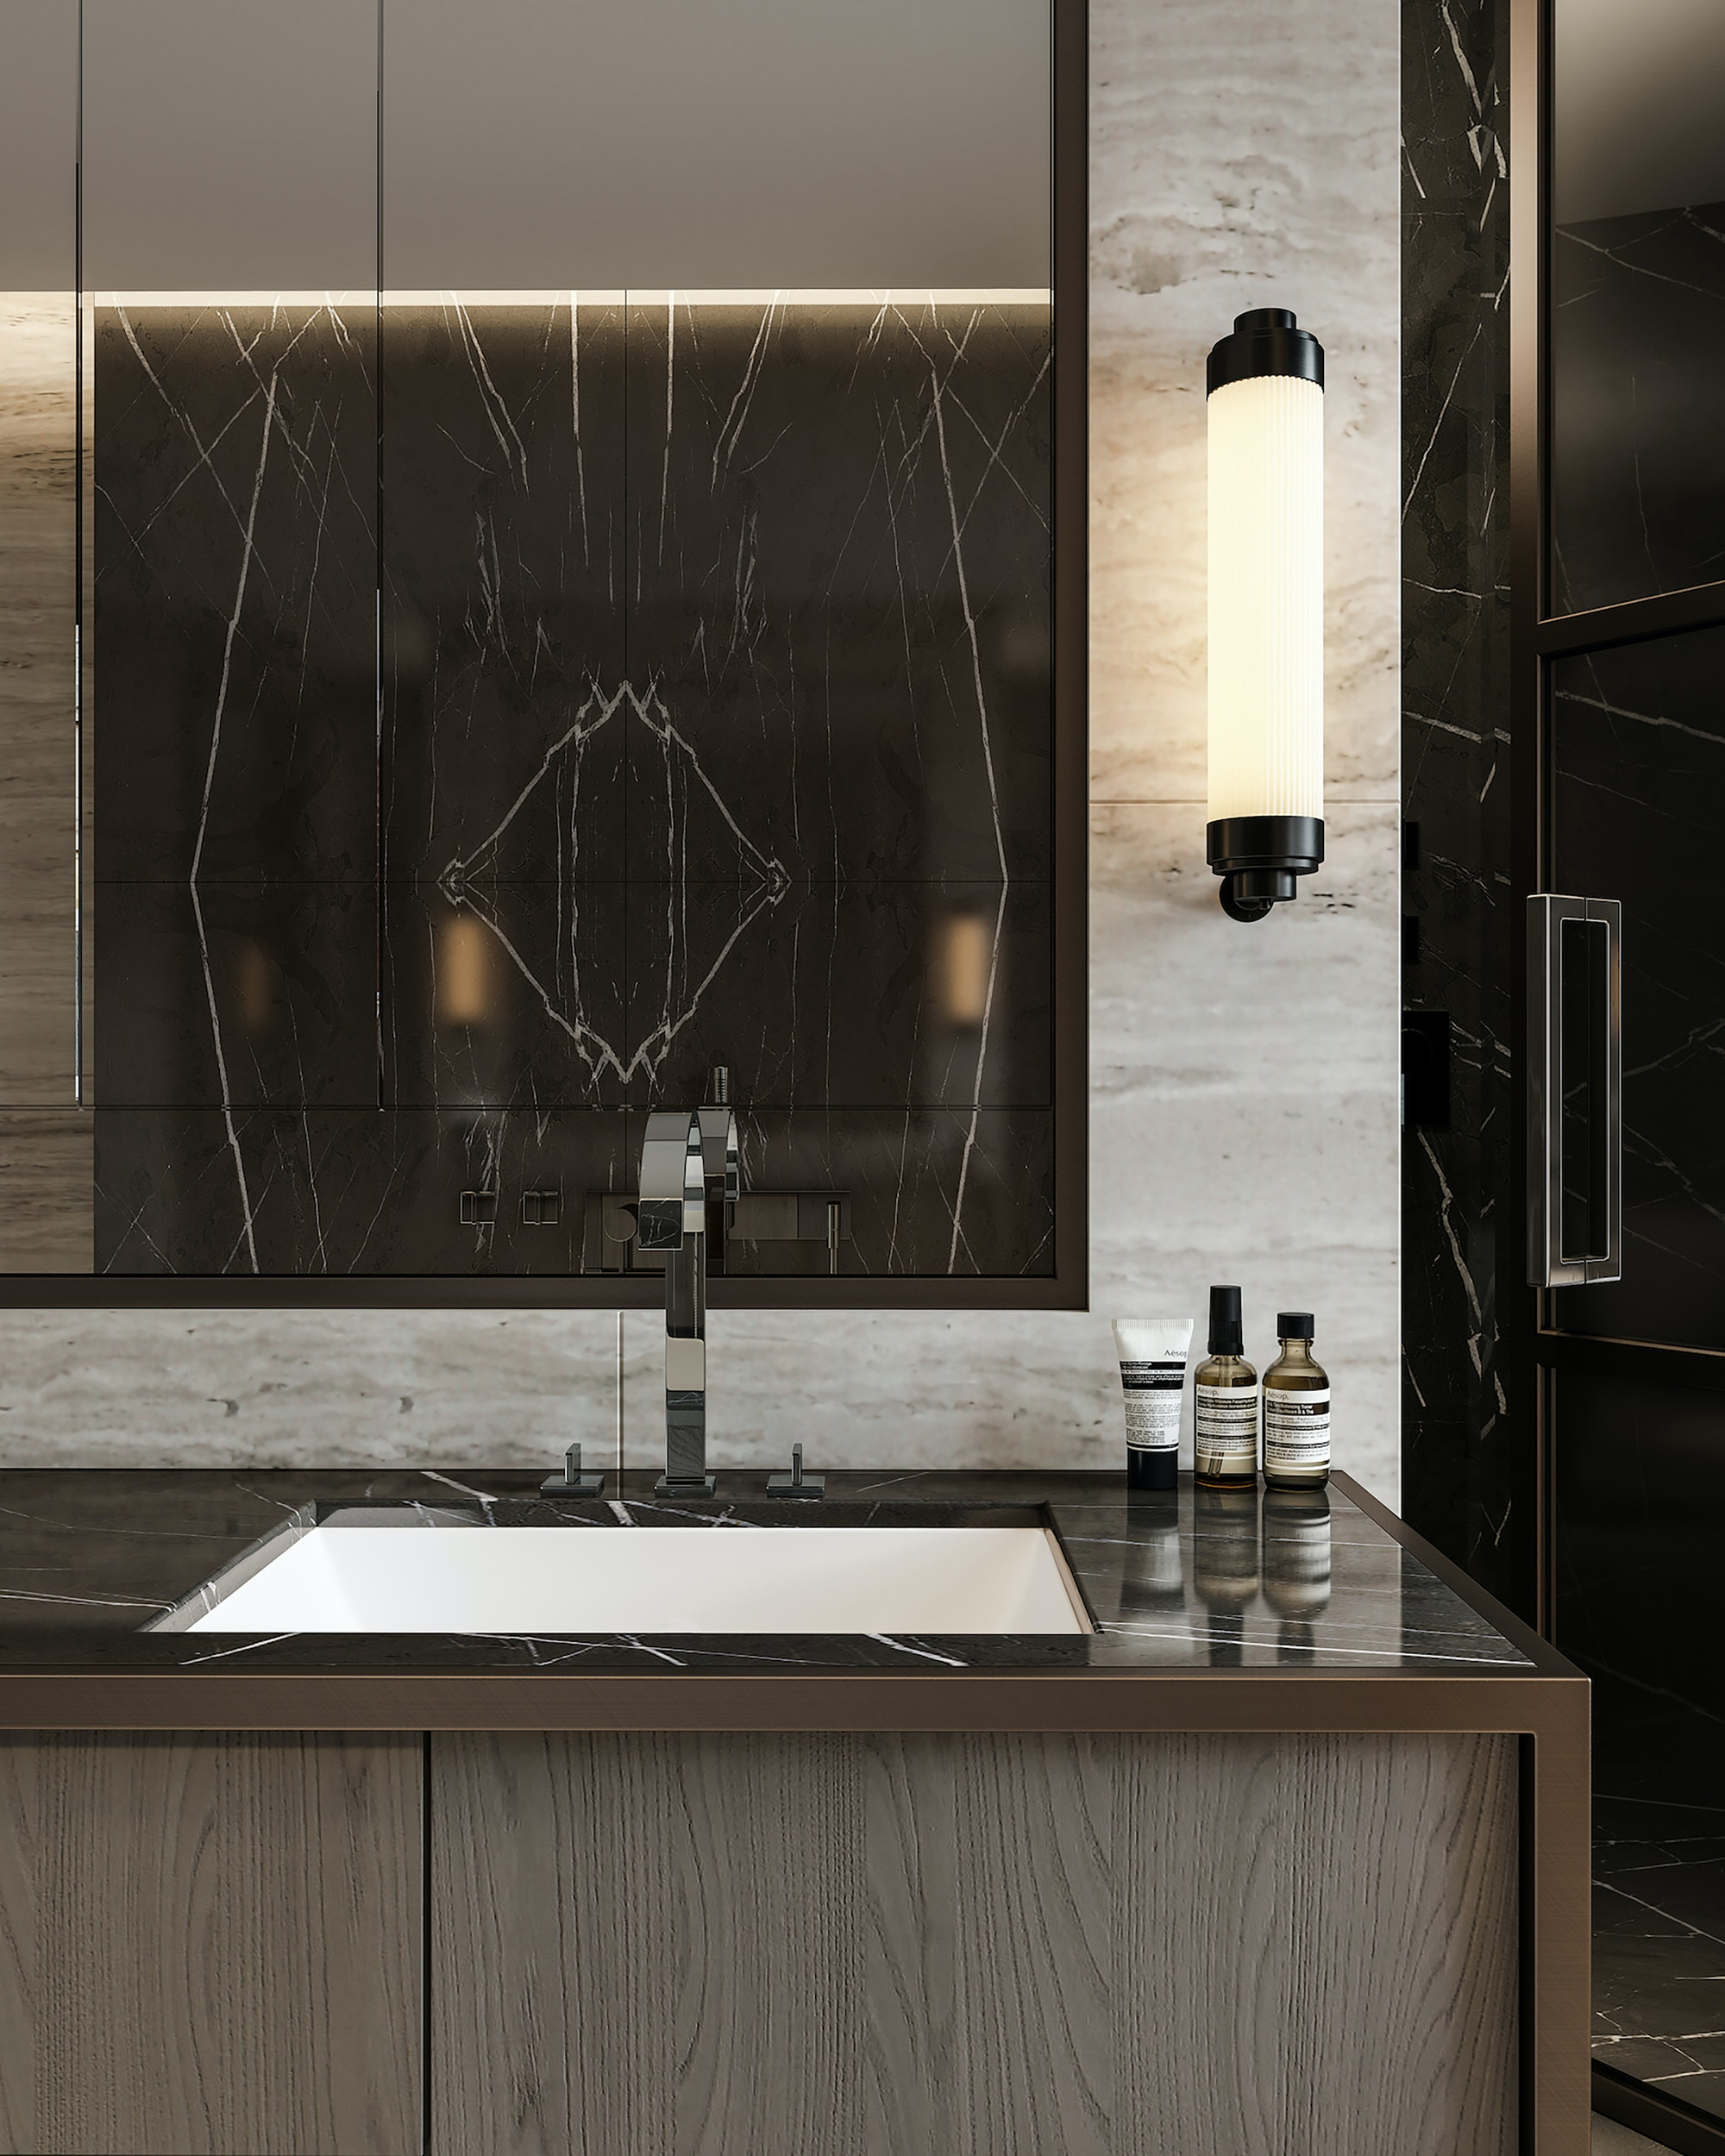 MAWD-Golden-Square-London-luxury-interior-bathroom